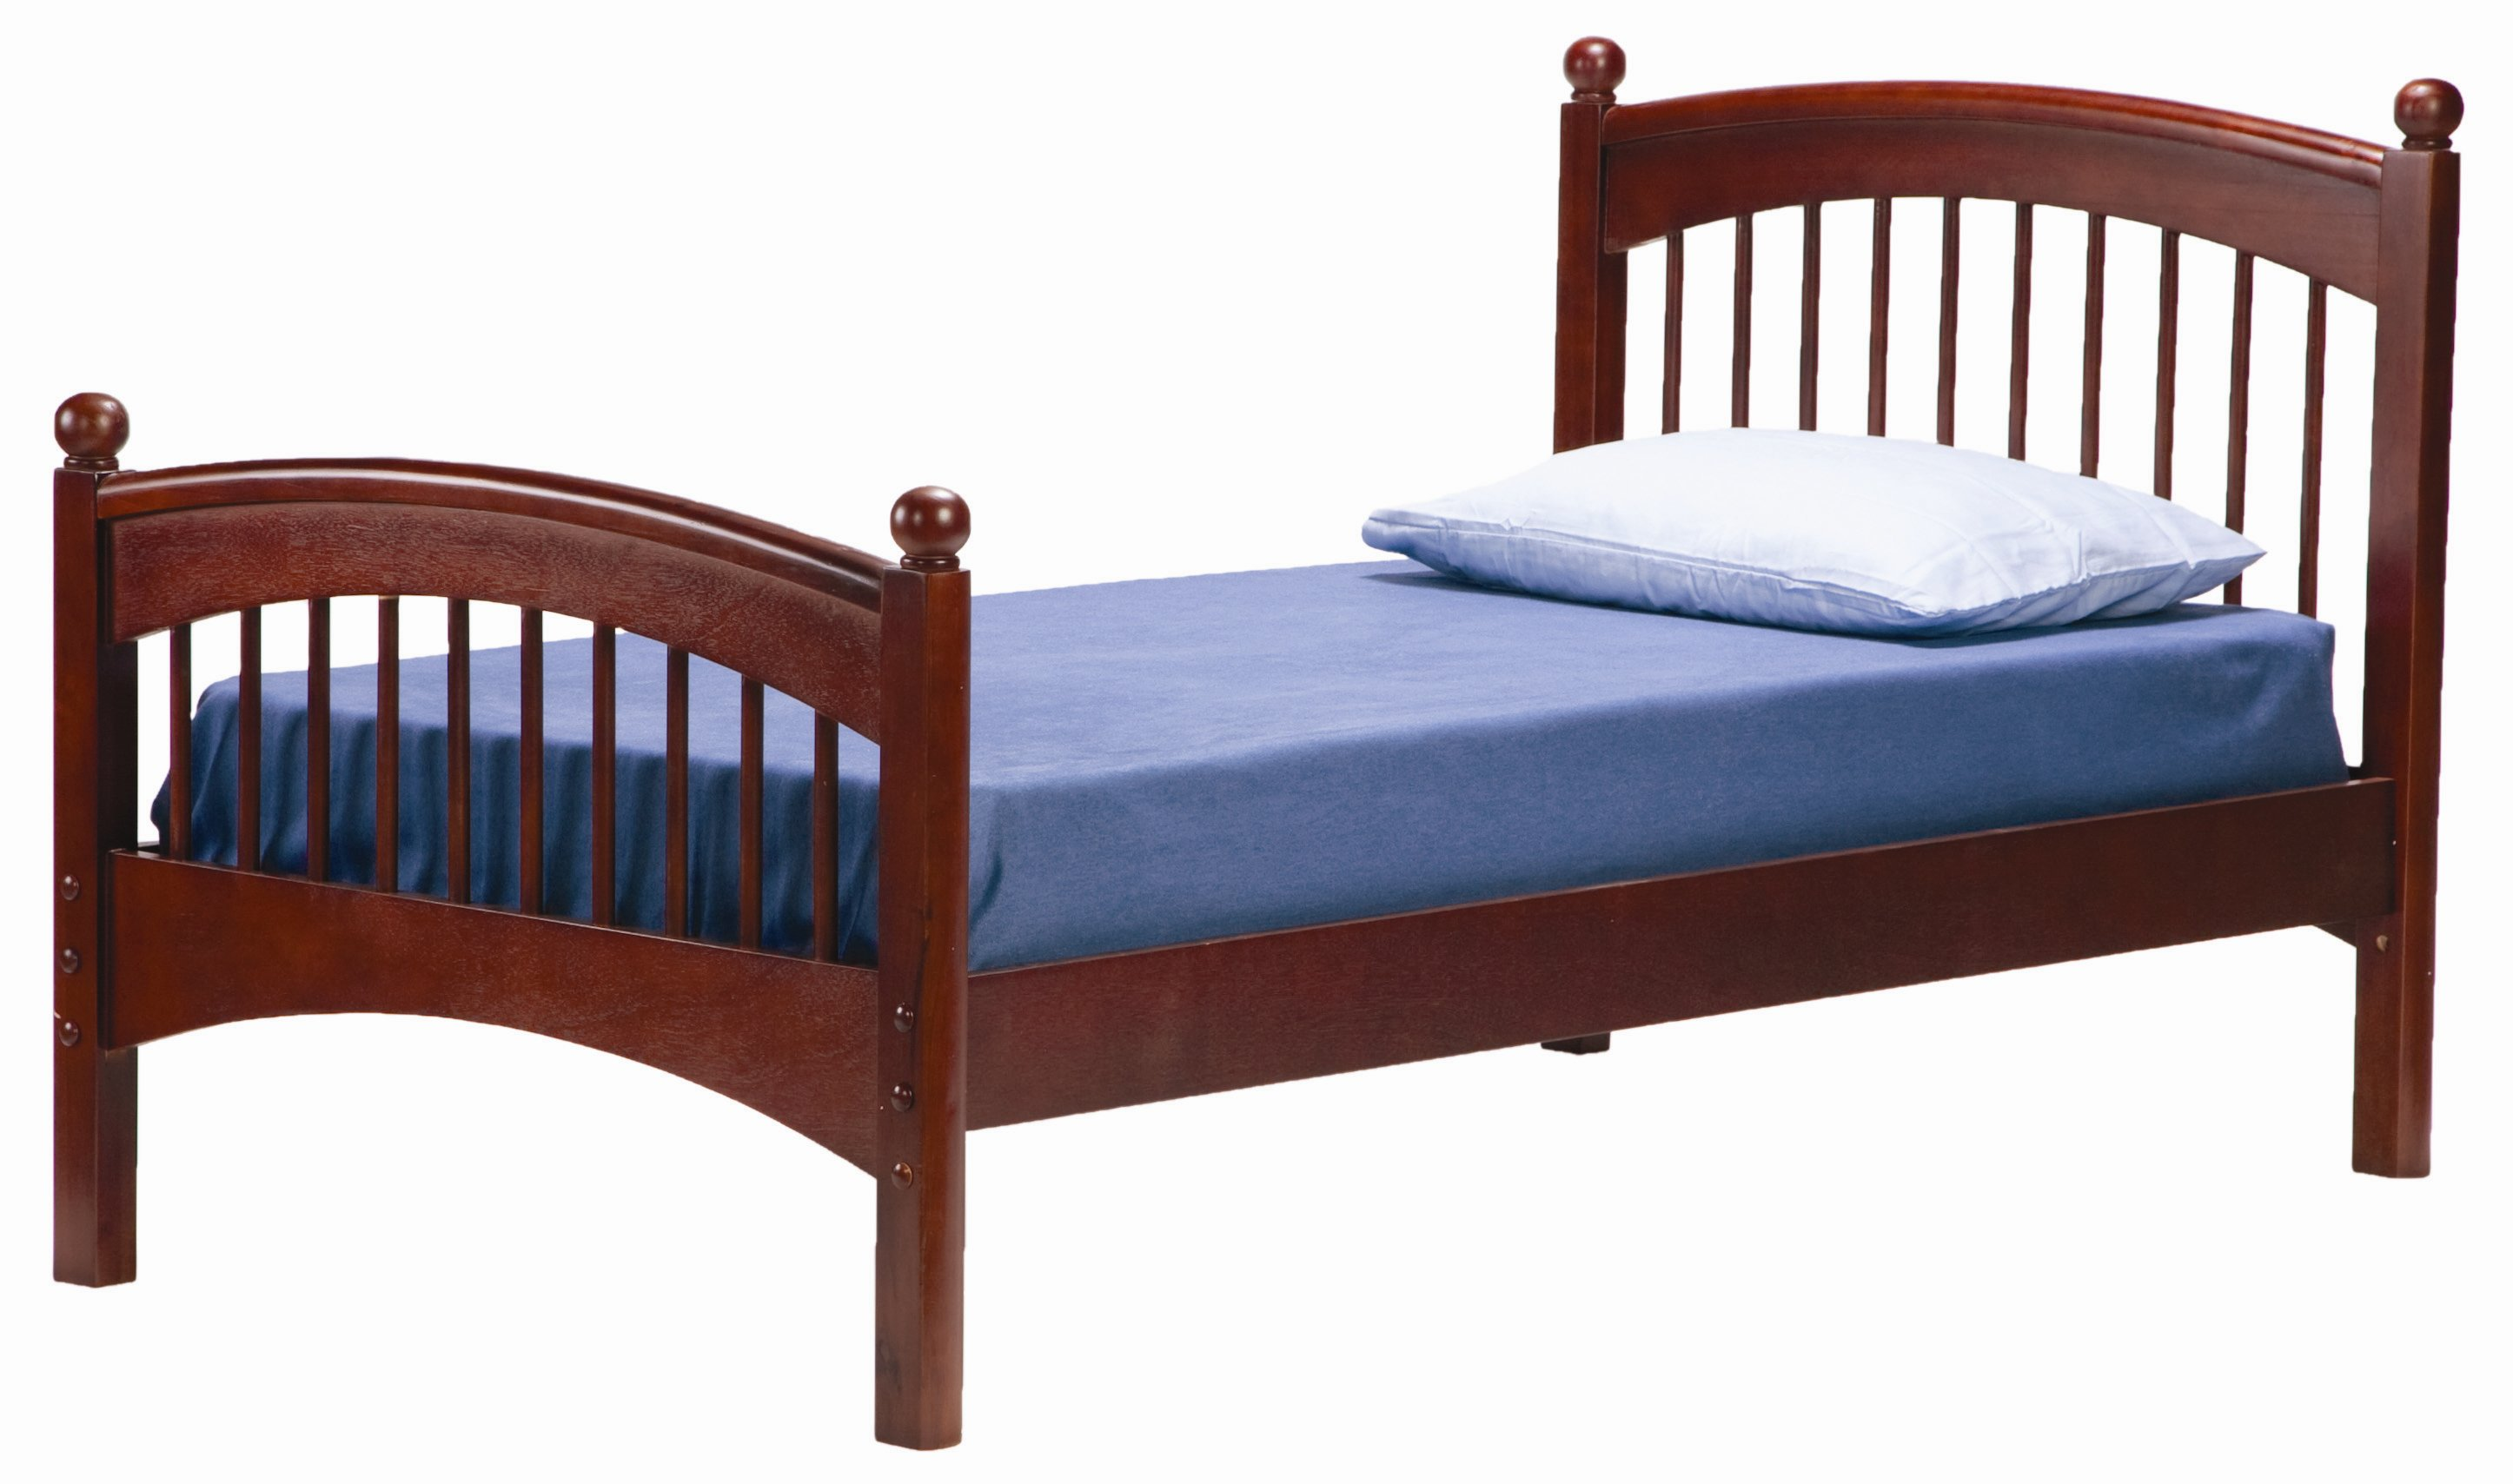 Bolton Furniture Windsor Kids Bed Best Price